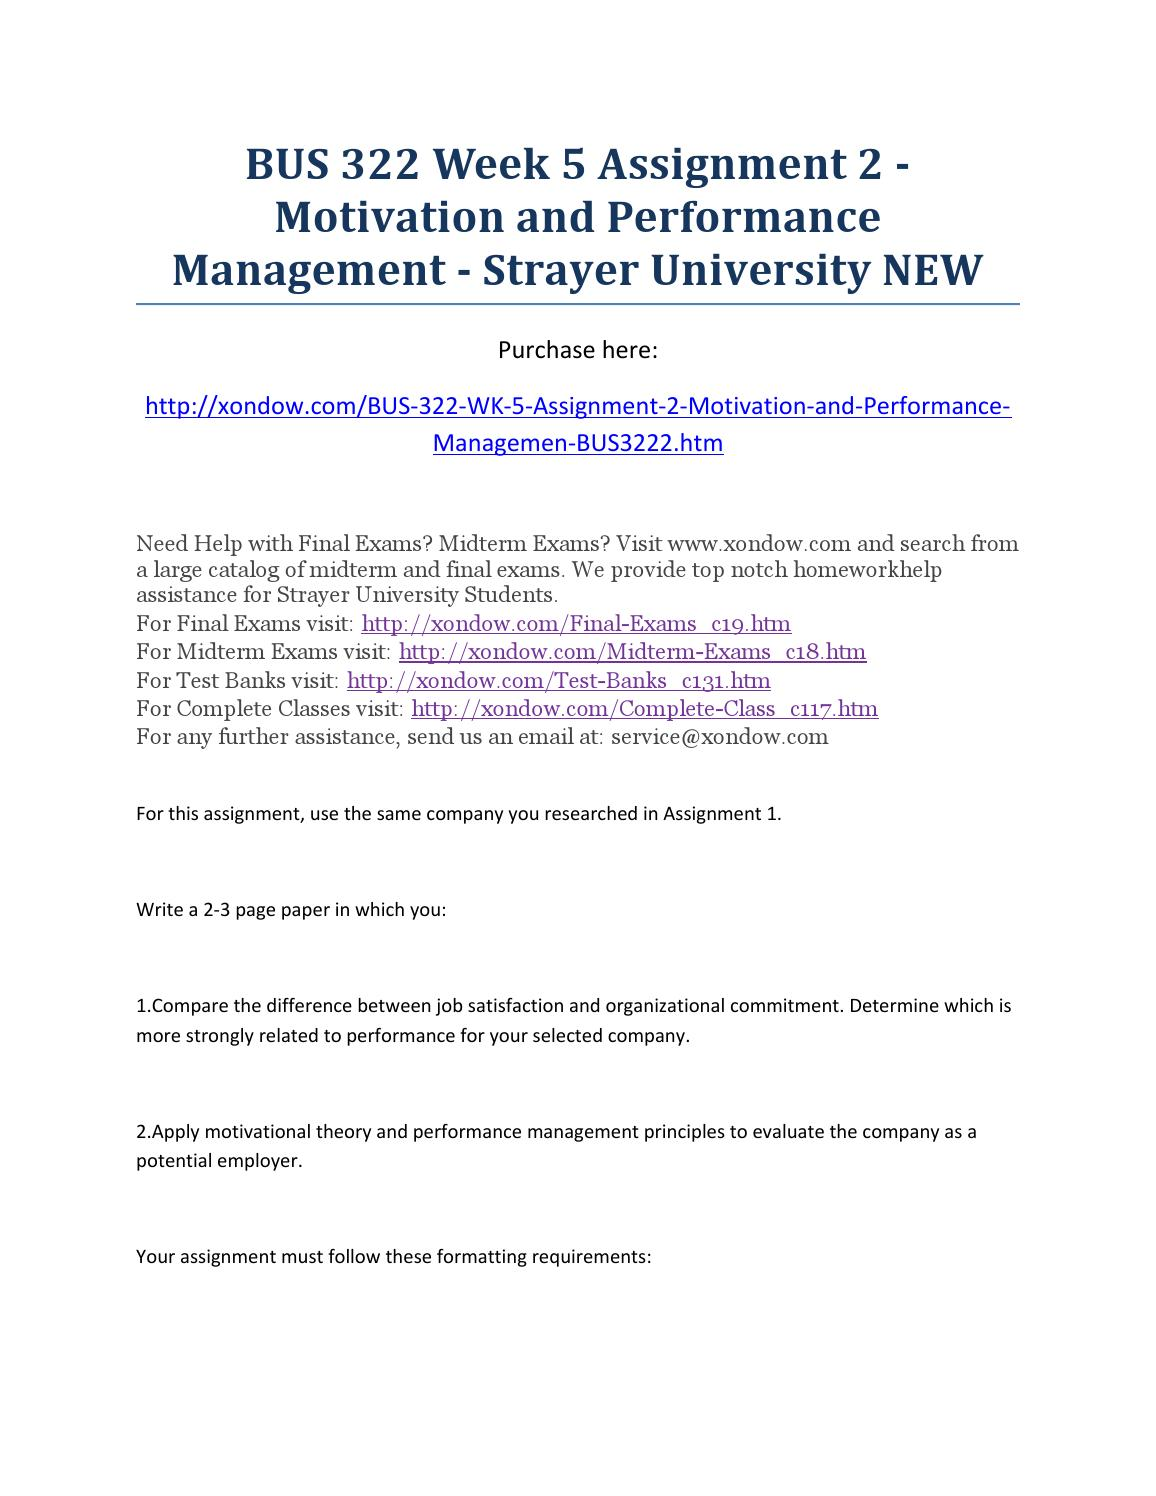 evaluate the usefulness of a motivation theory for managers